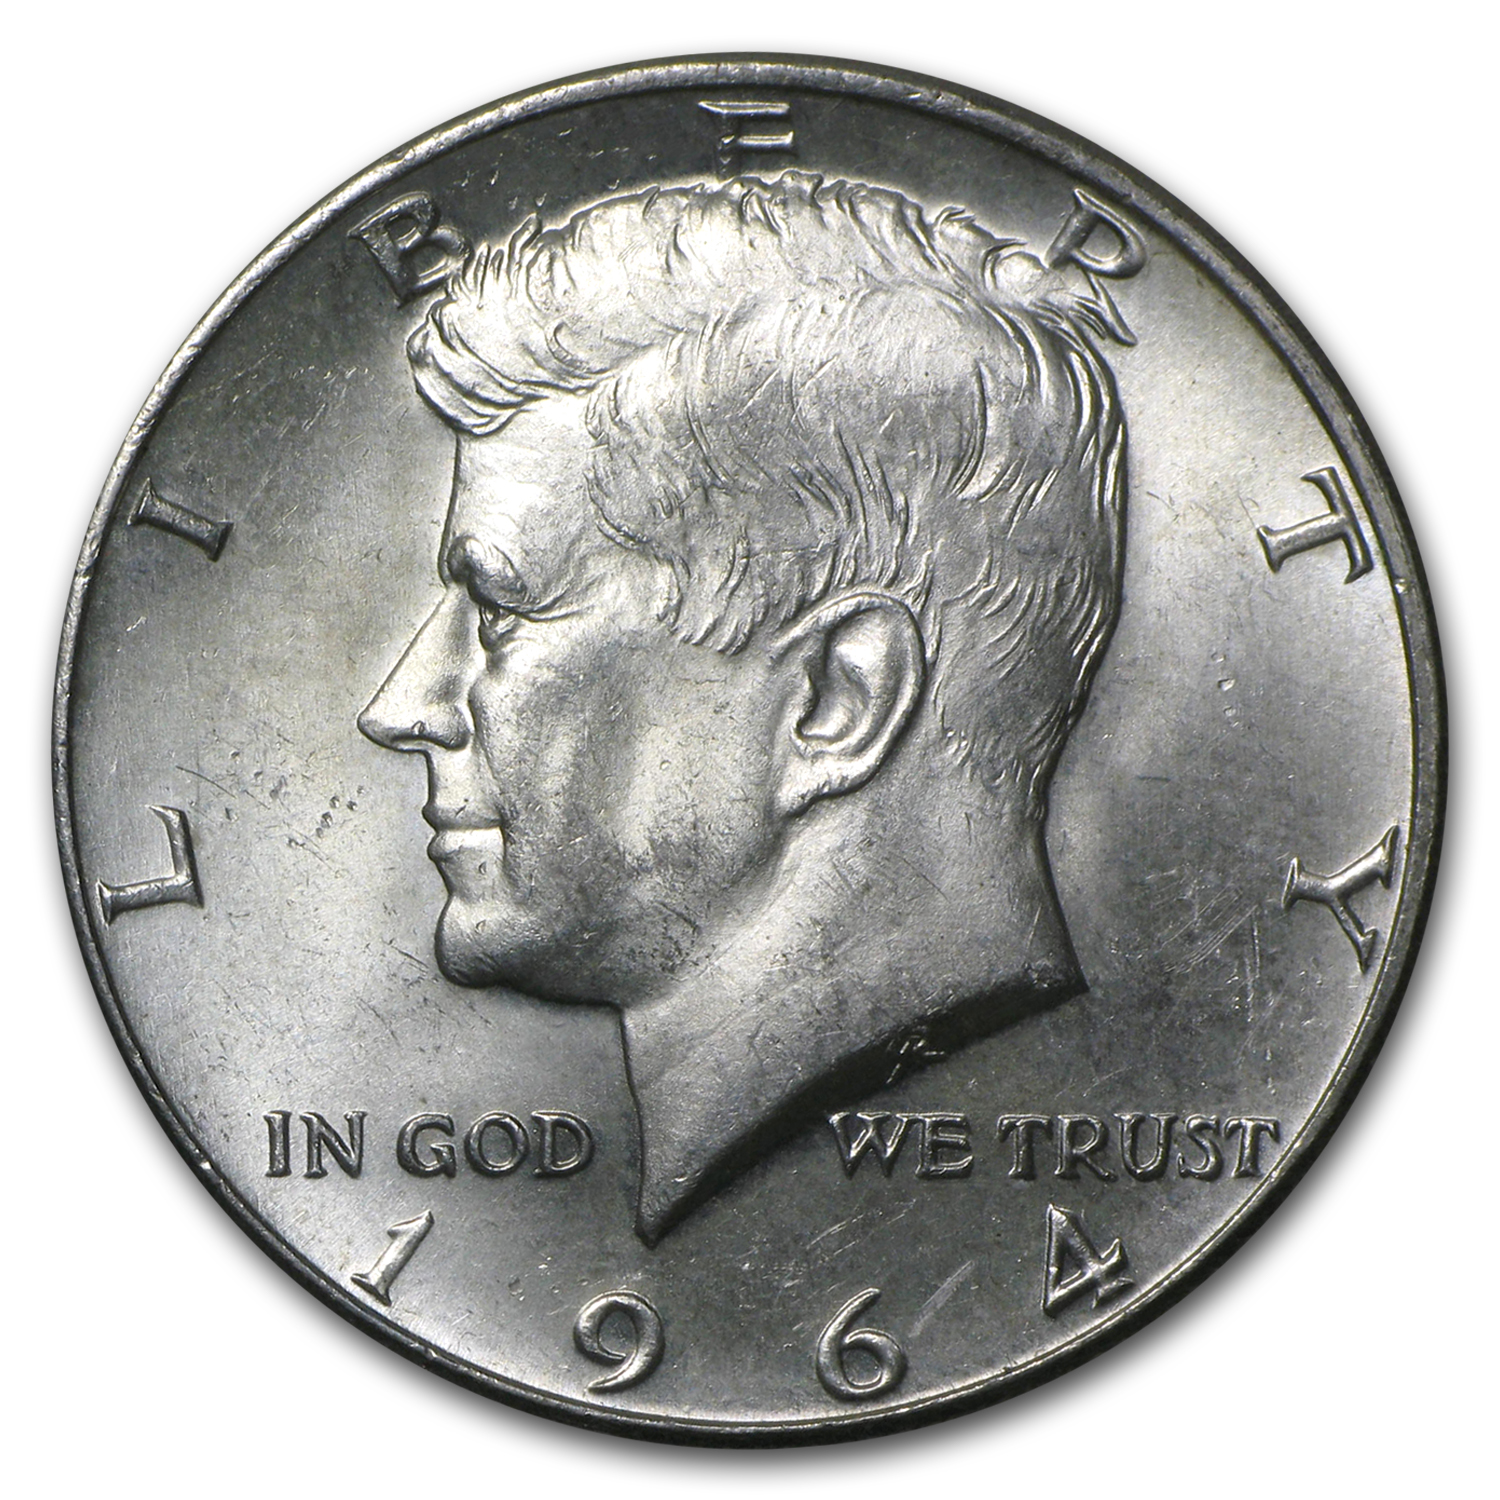 90% Silver Kennedy Half-Dollars $500 Face-Value Bag (1964)